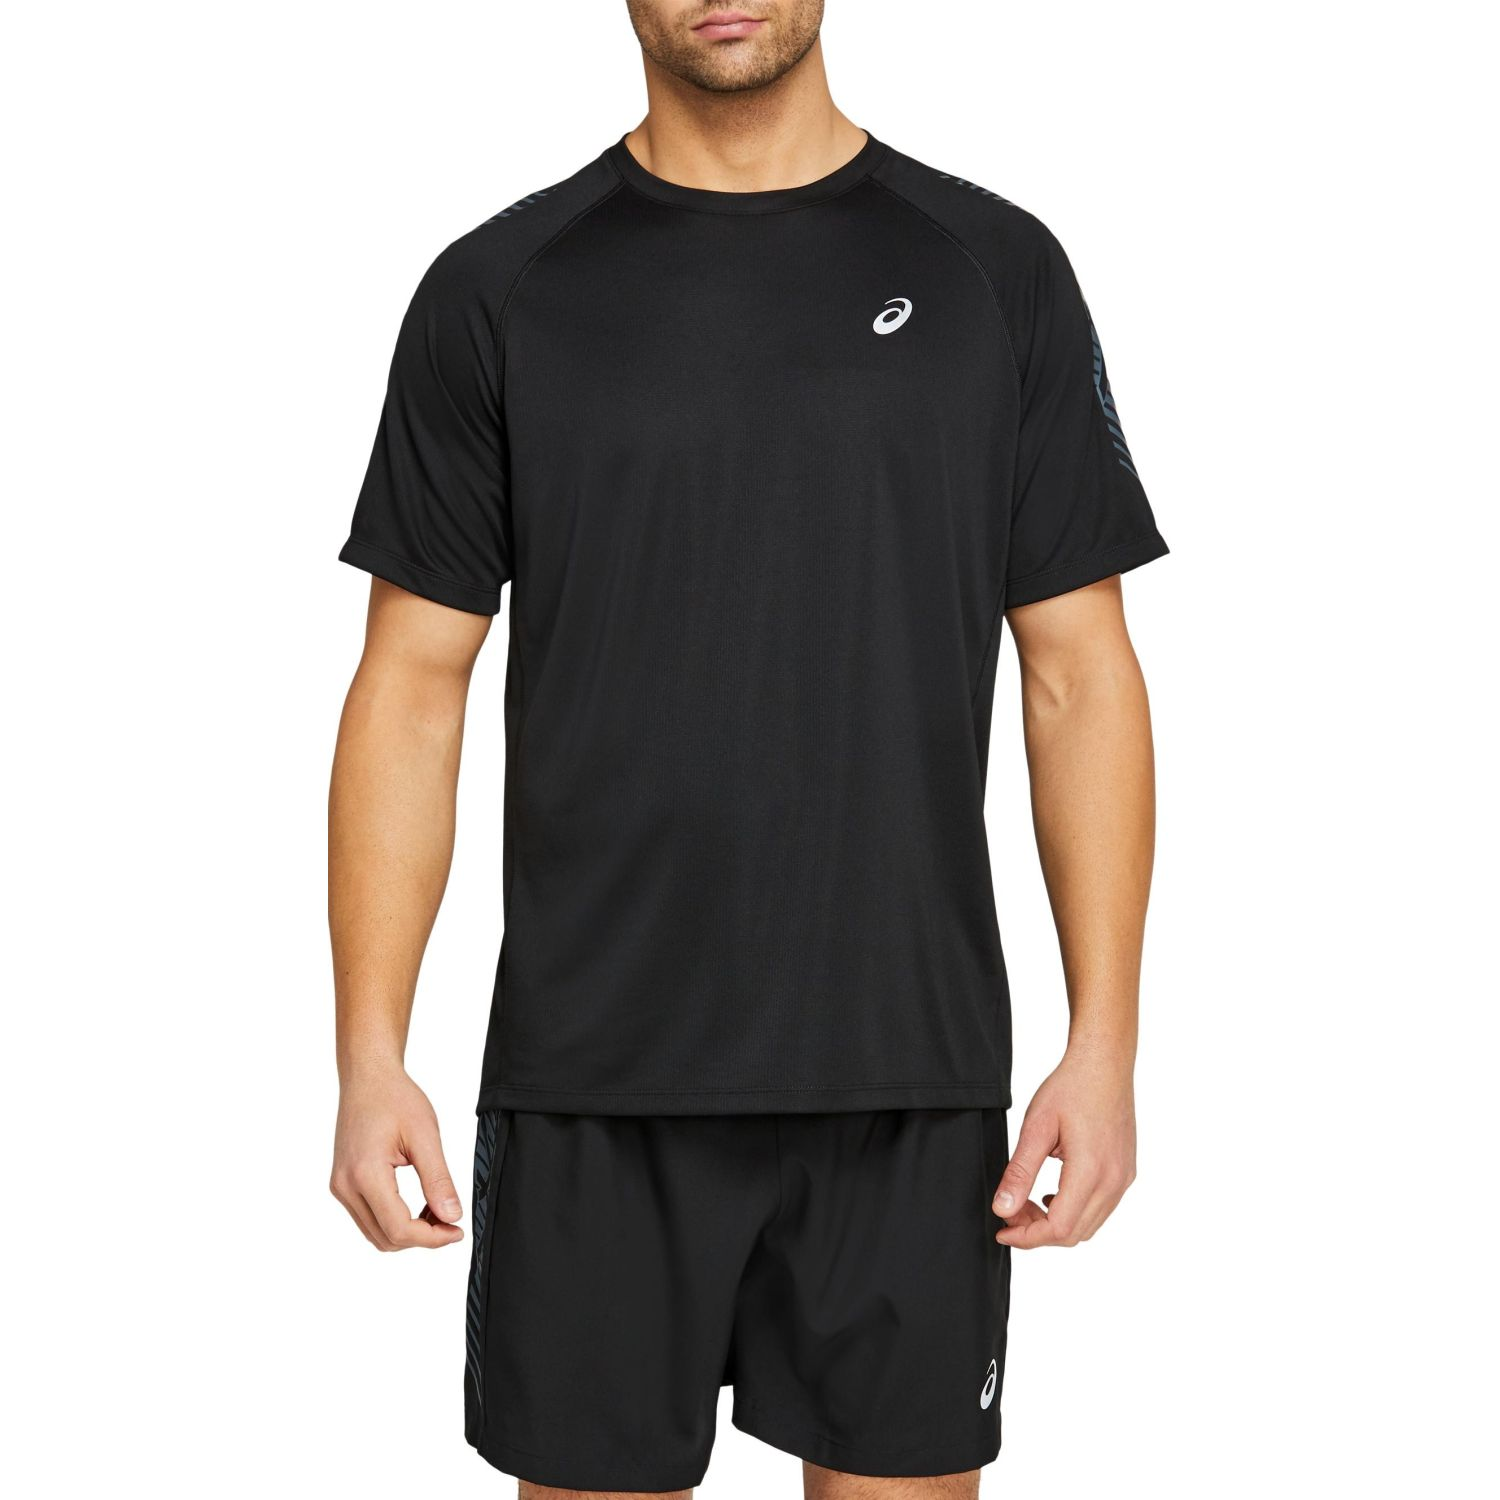 Asics M Icon Ss Top Perf Blk Carrier Gry Negro Camisetas y polos deportivos